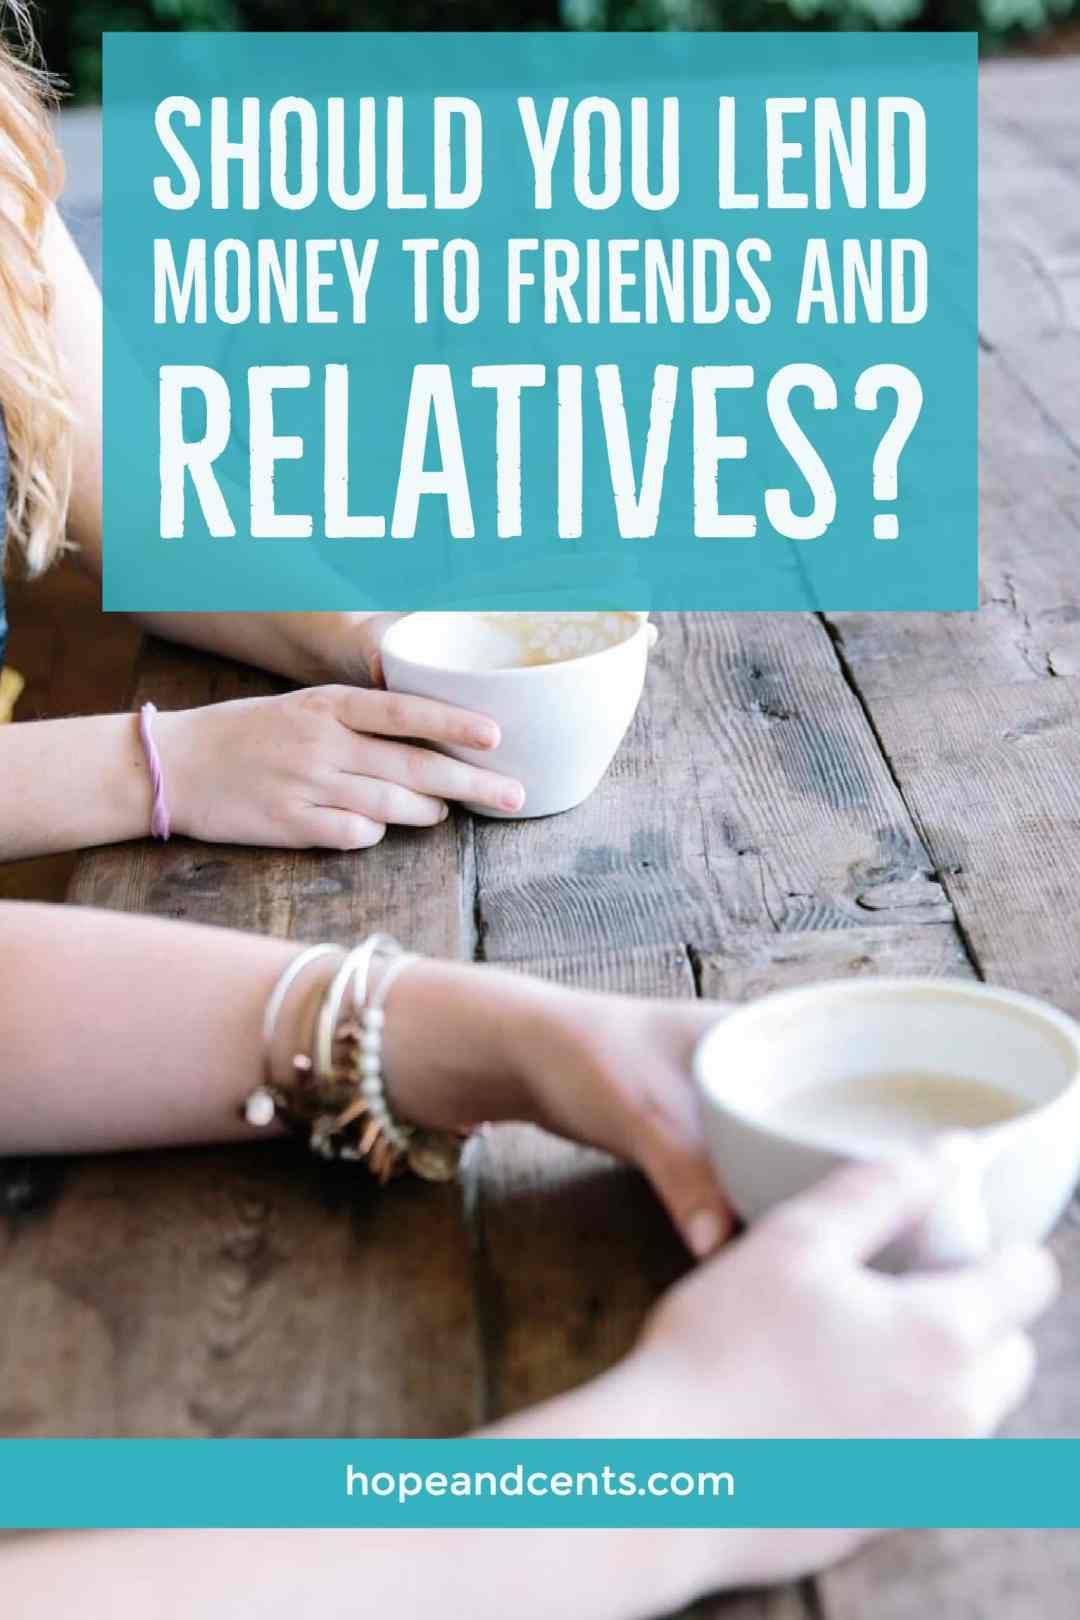 Should you lend money to friends and relatives? A look at what you may encounter if you lend money and how to handle it if you're asked.